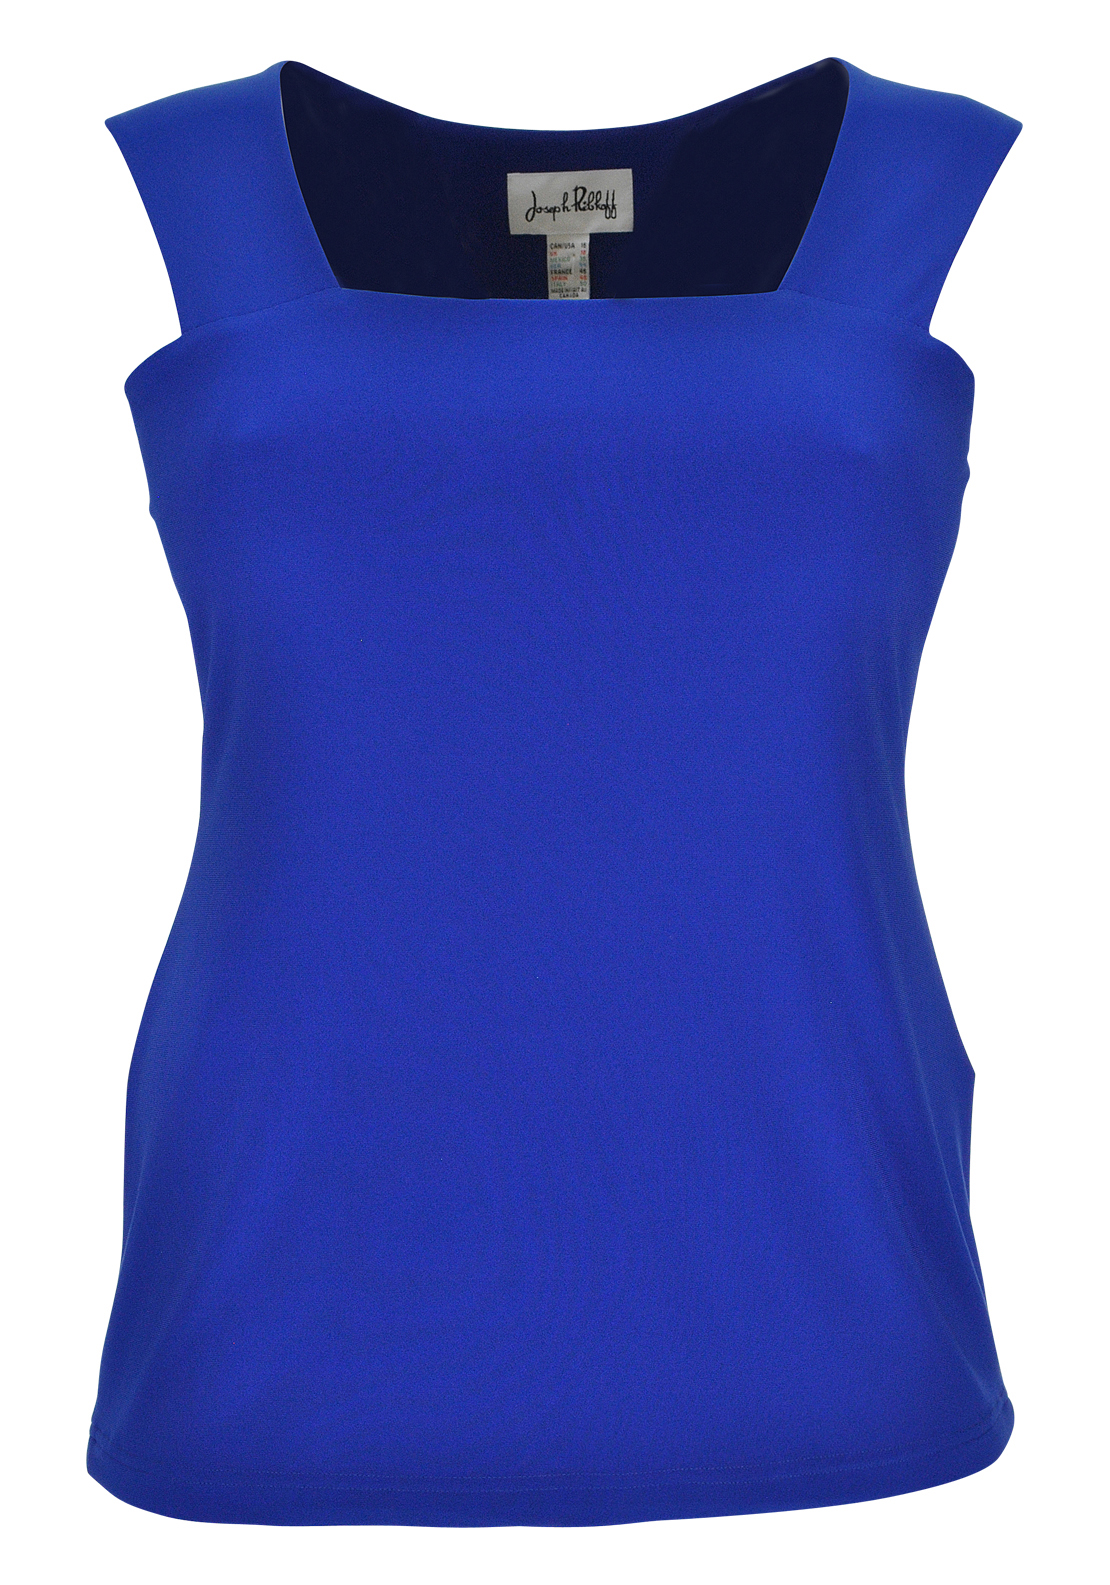 Joseph Ribkoff Colour Block Sleeveless Top, Cobalt Blue